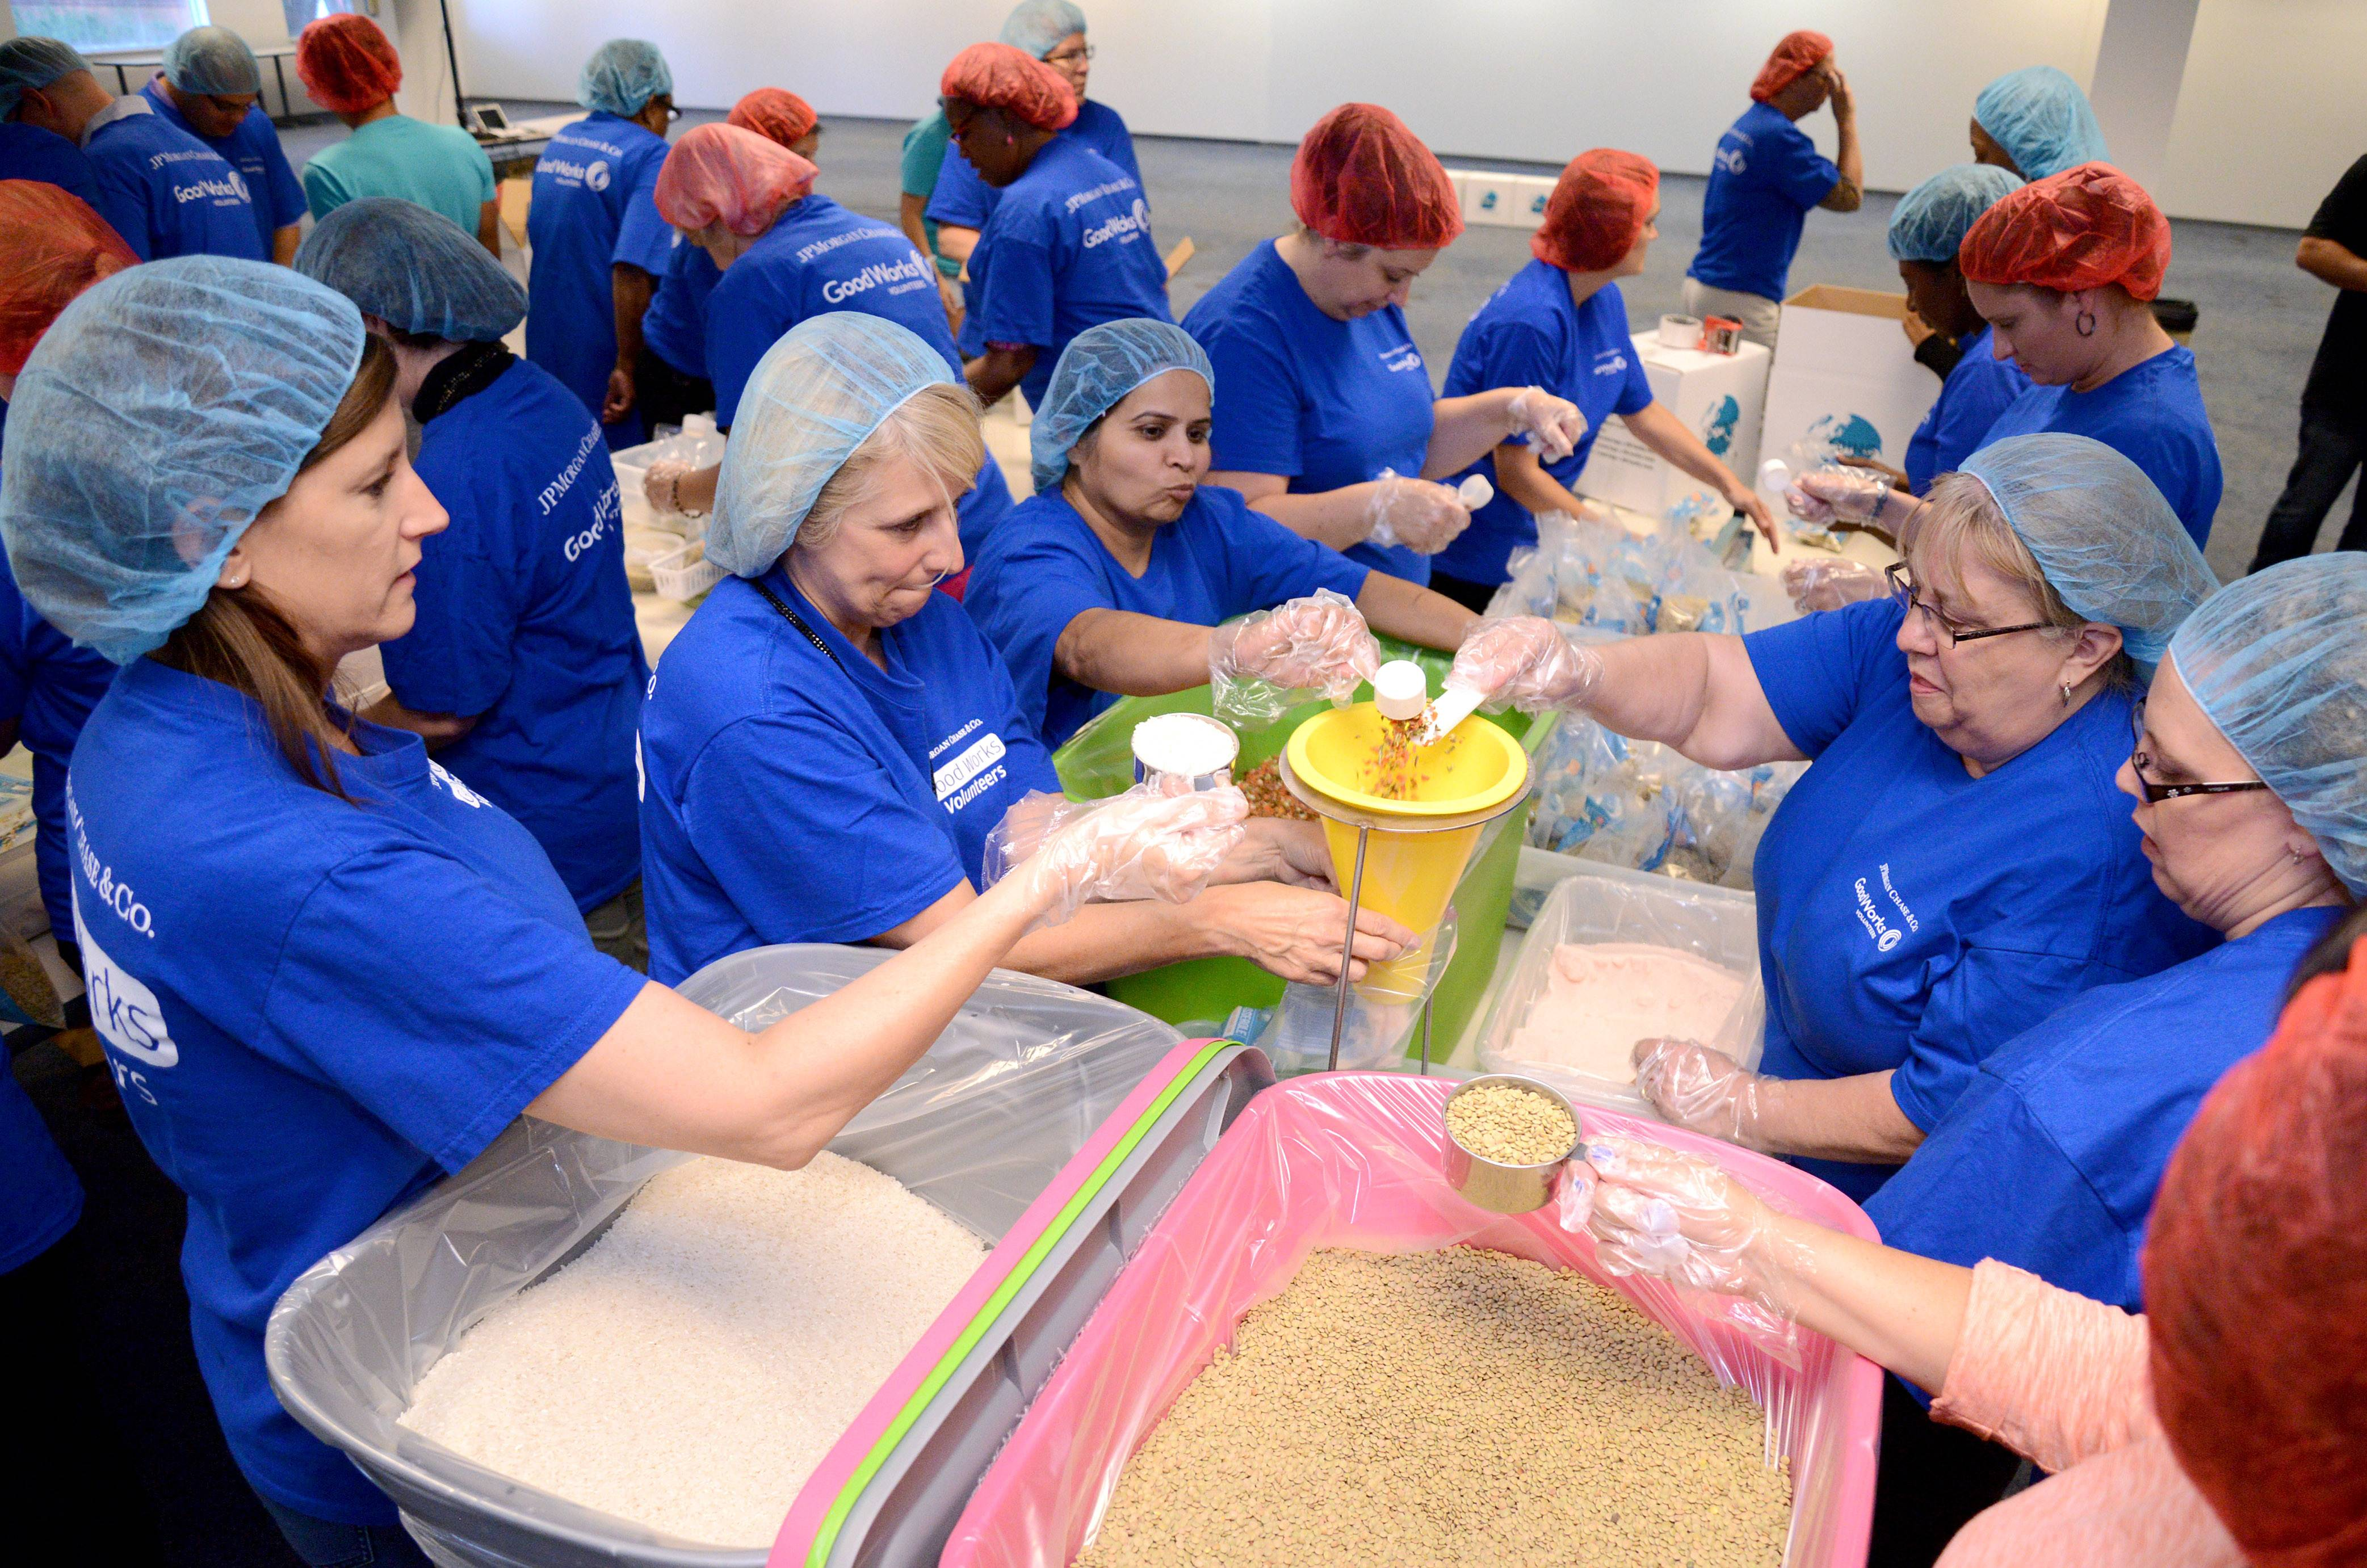 Volunteers at Chase's Elgin facility team up to package 12,000 meals within the first hour of the company event Thursday.